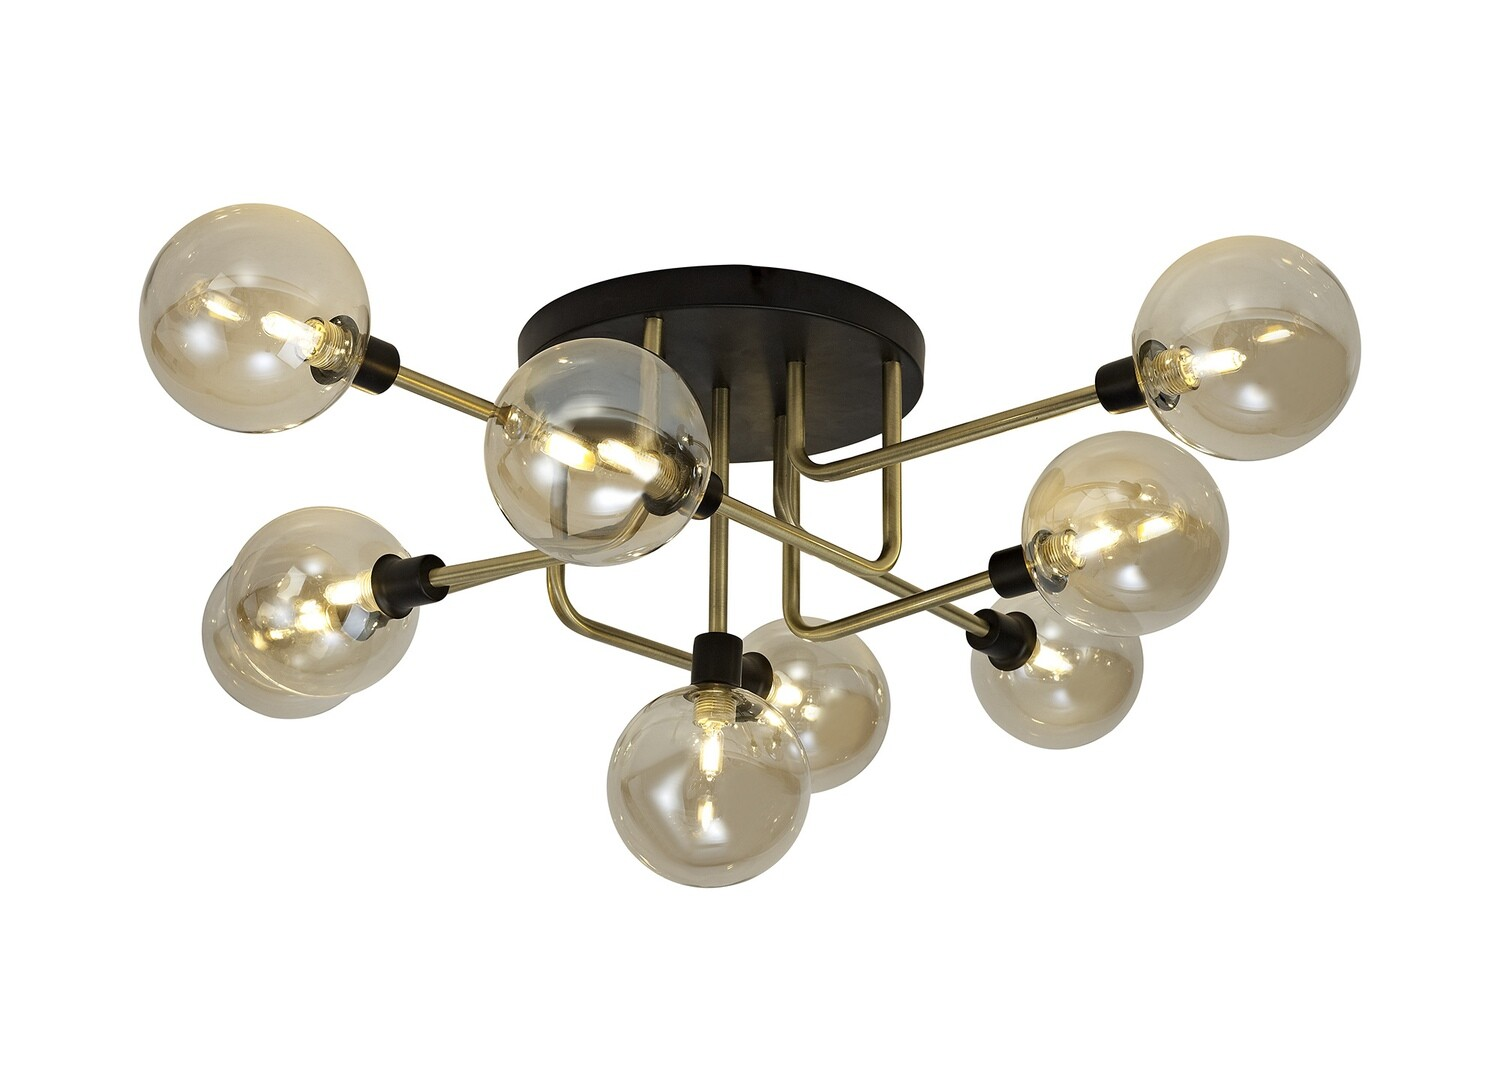 Avellana Flush Ceiling, 9 Light G9, Matt Black/Antique Brass/Cognac Glass